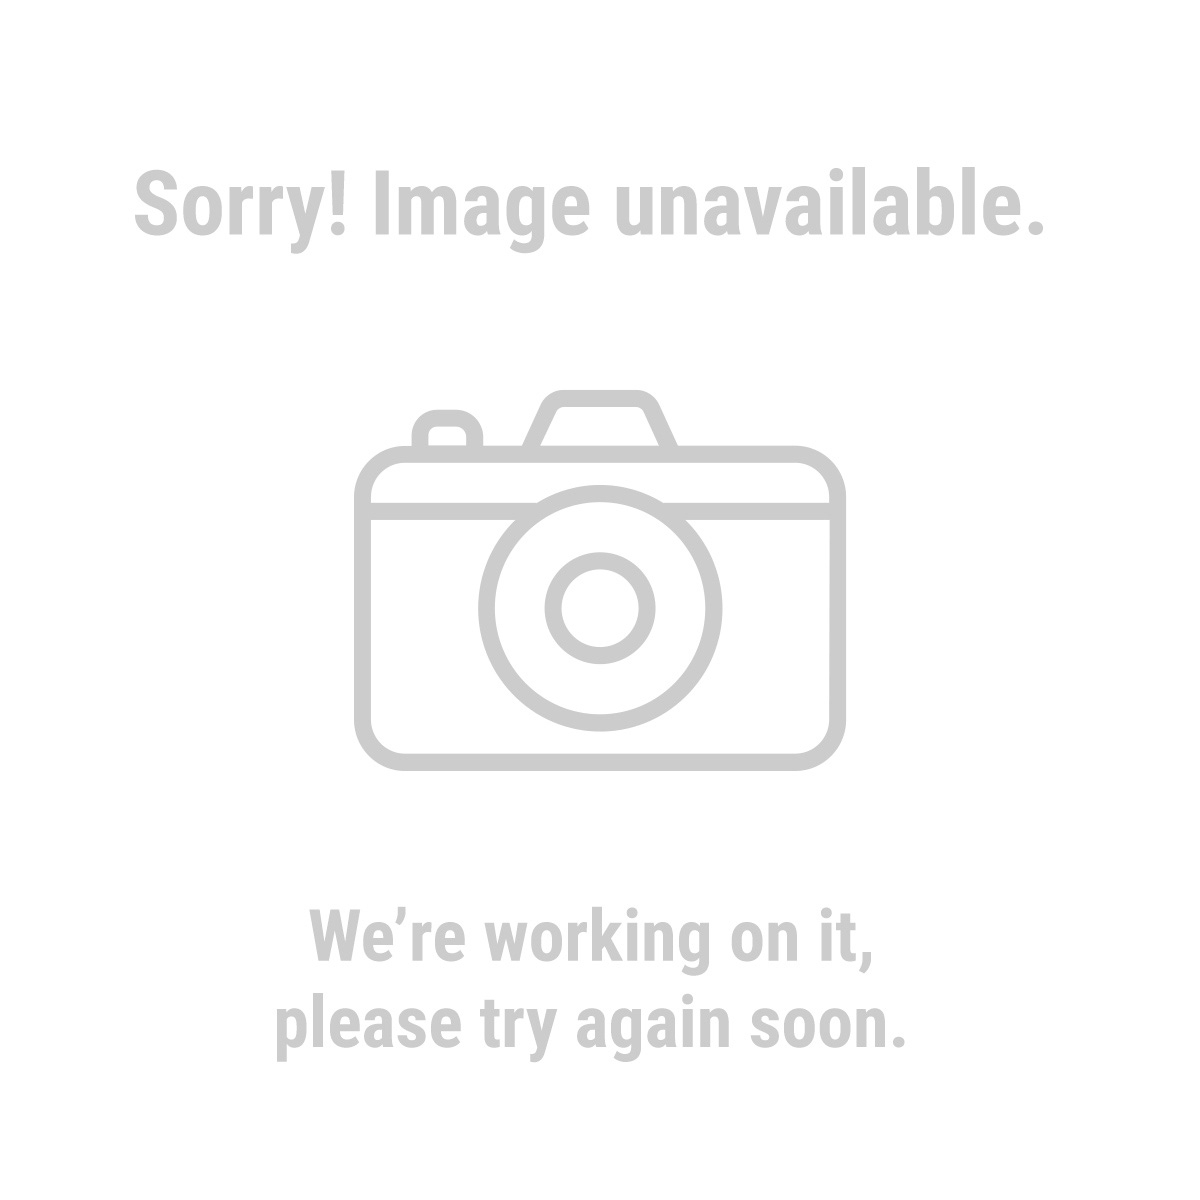 Chicago Electric 99960 100 Ft. 12 Gauge Triple Tap Extension Cord with Indicator Light